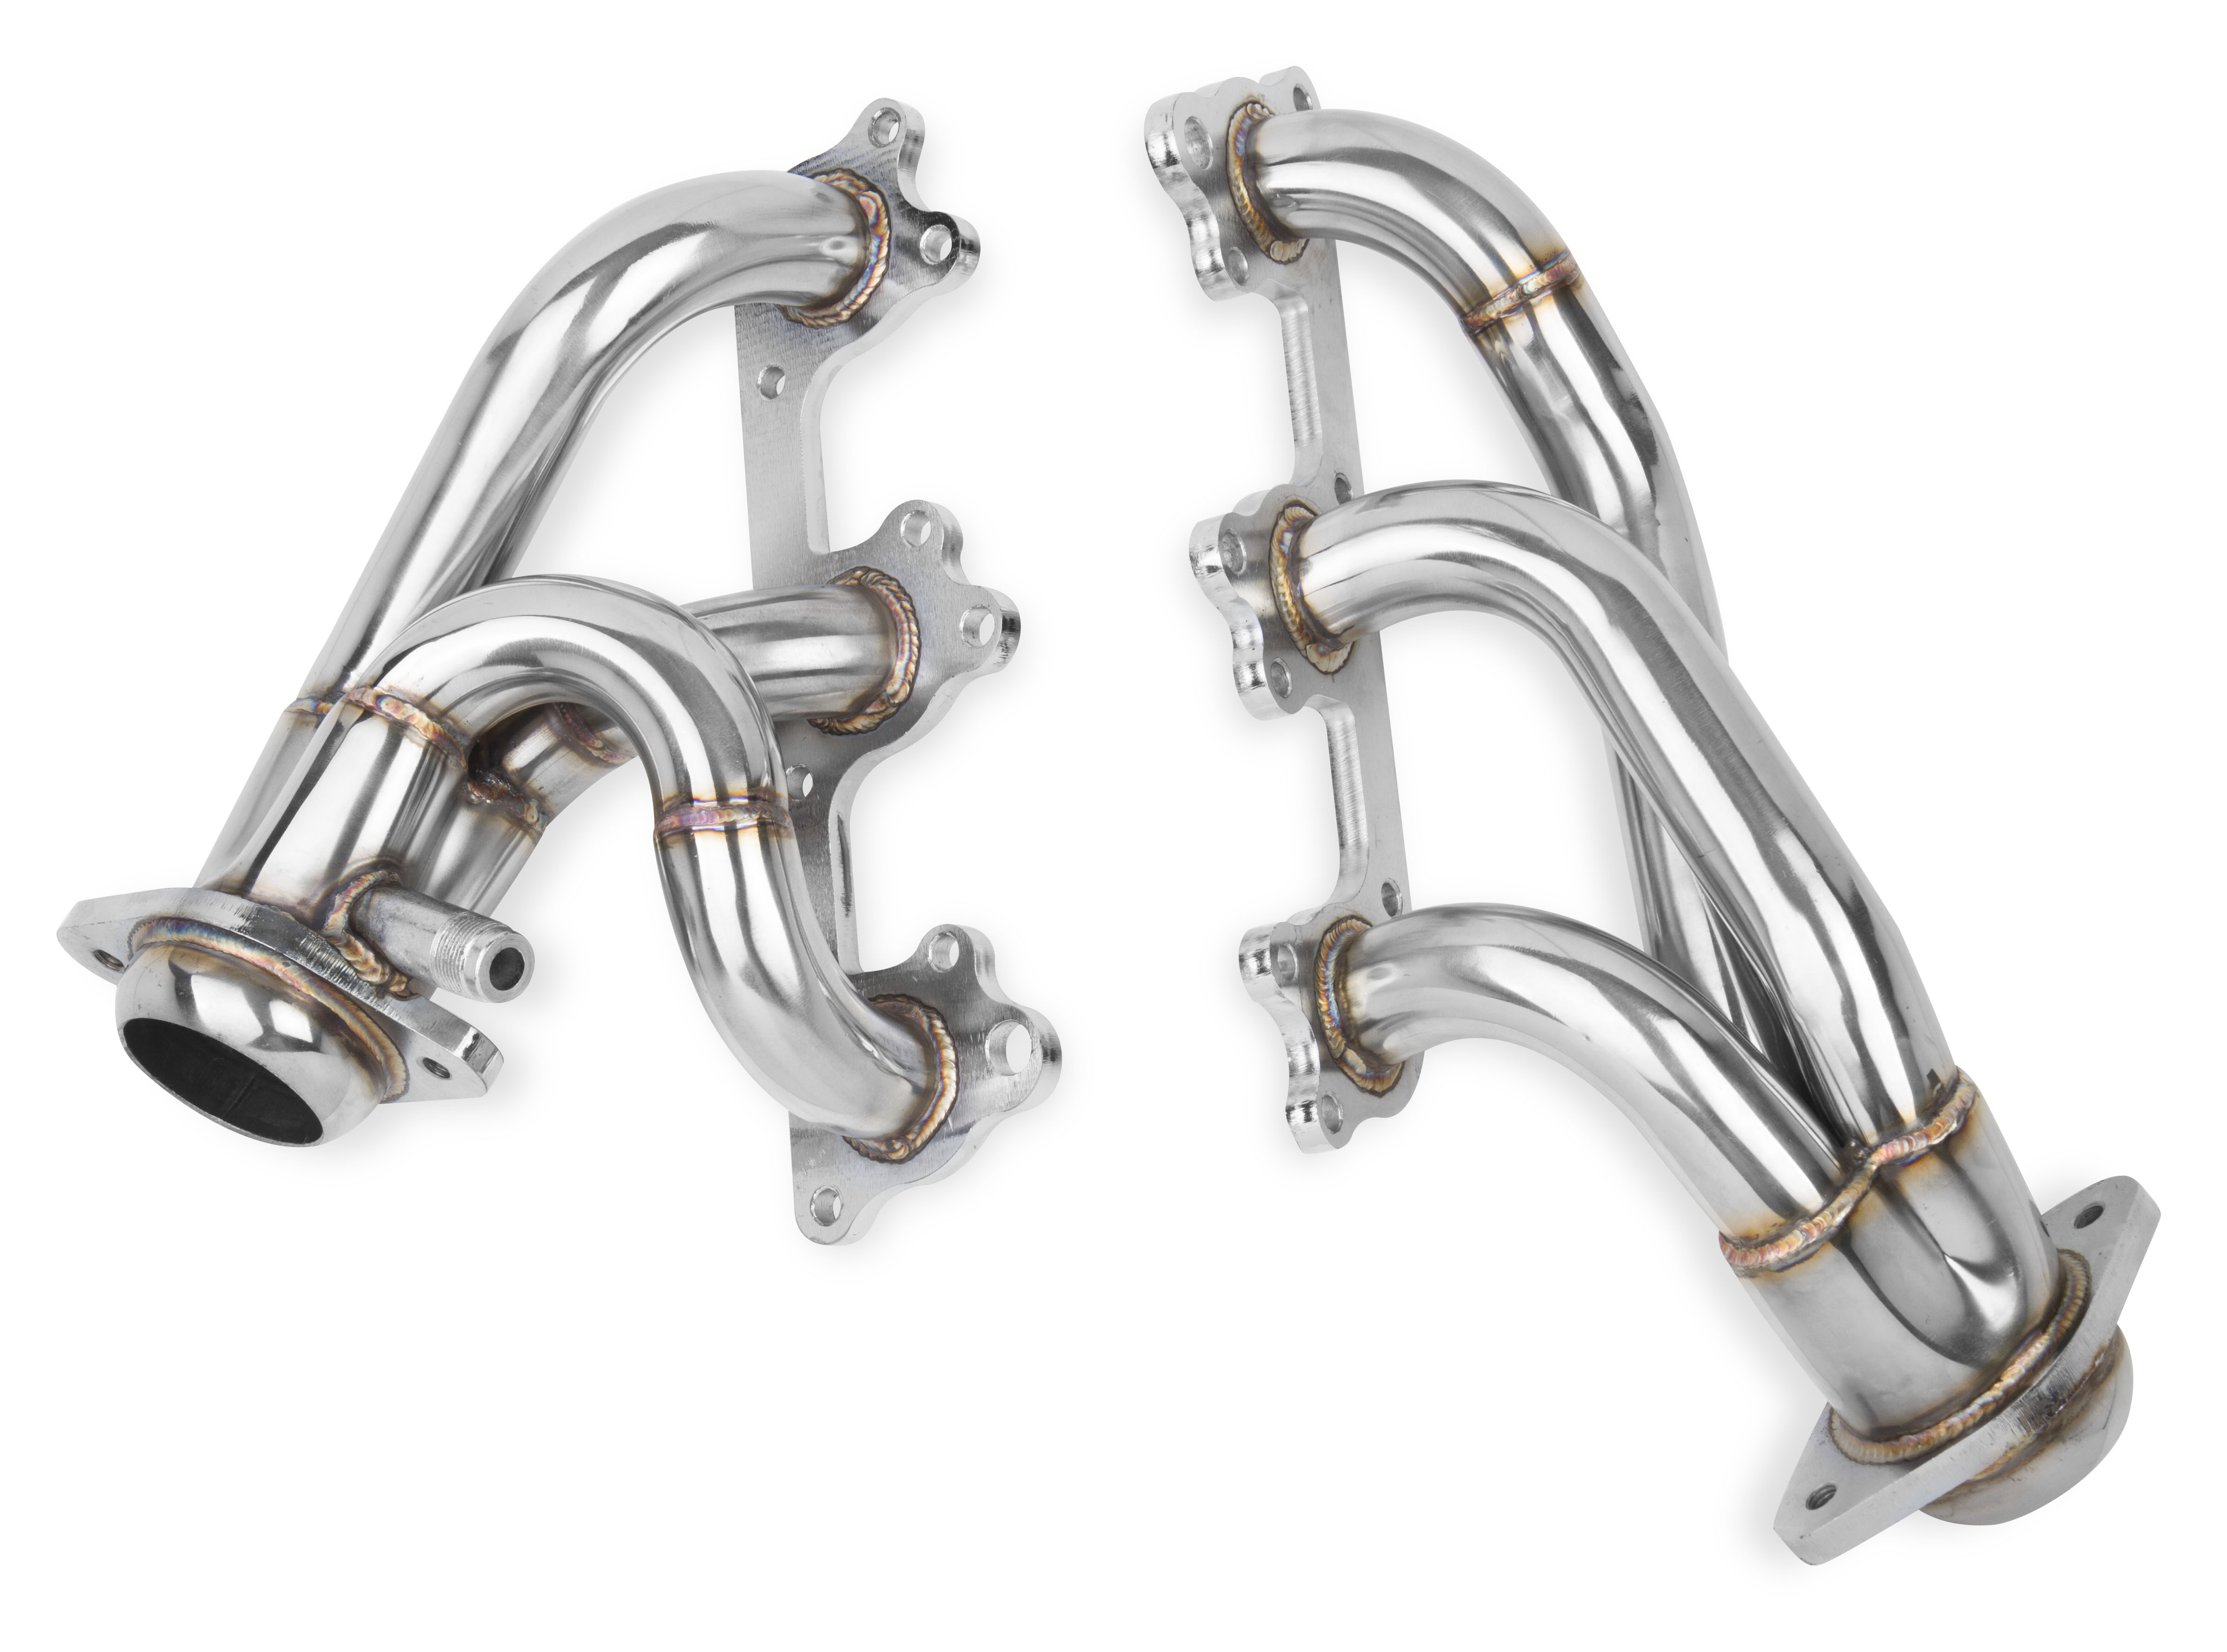 "2005-2010 Ford Mustang 4.0L V6 Flowtech Stainless Steel 1 1/2"" Shorty Headers - Polished"